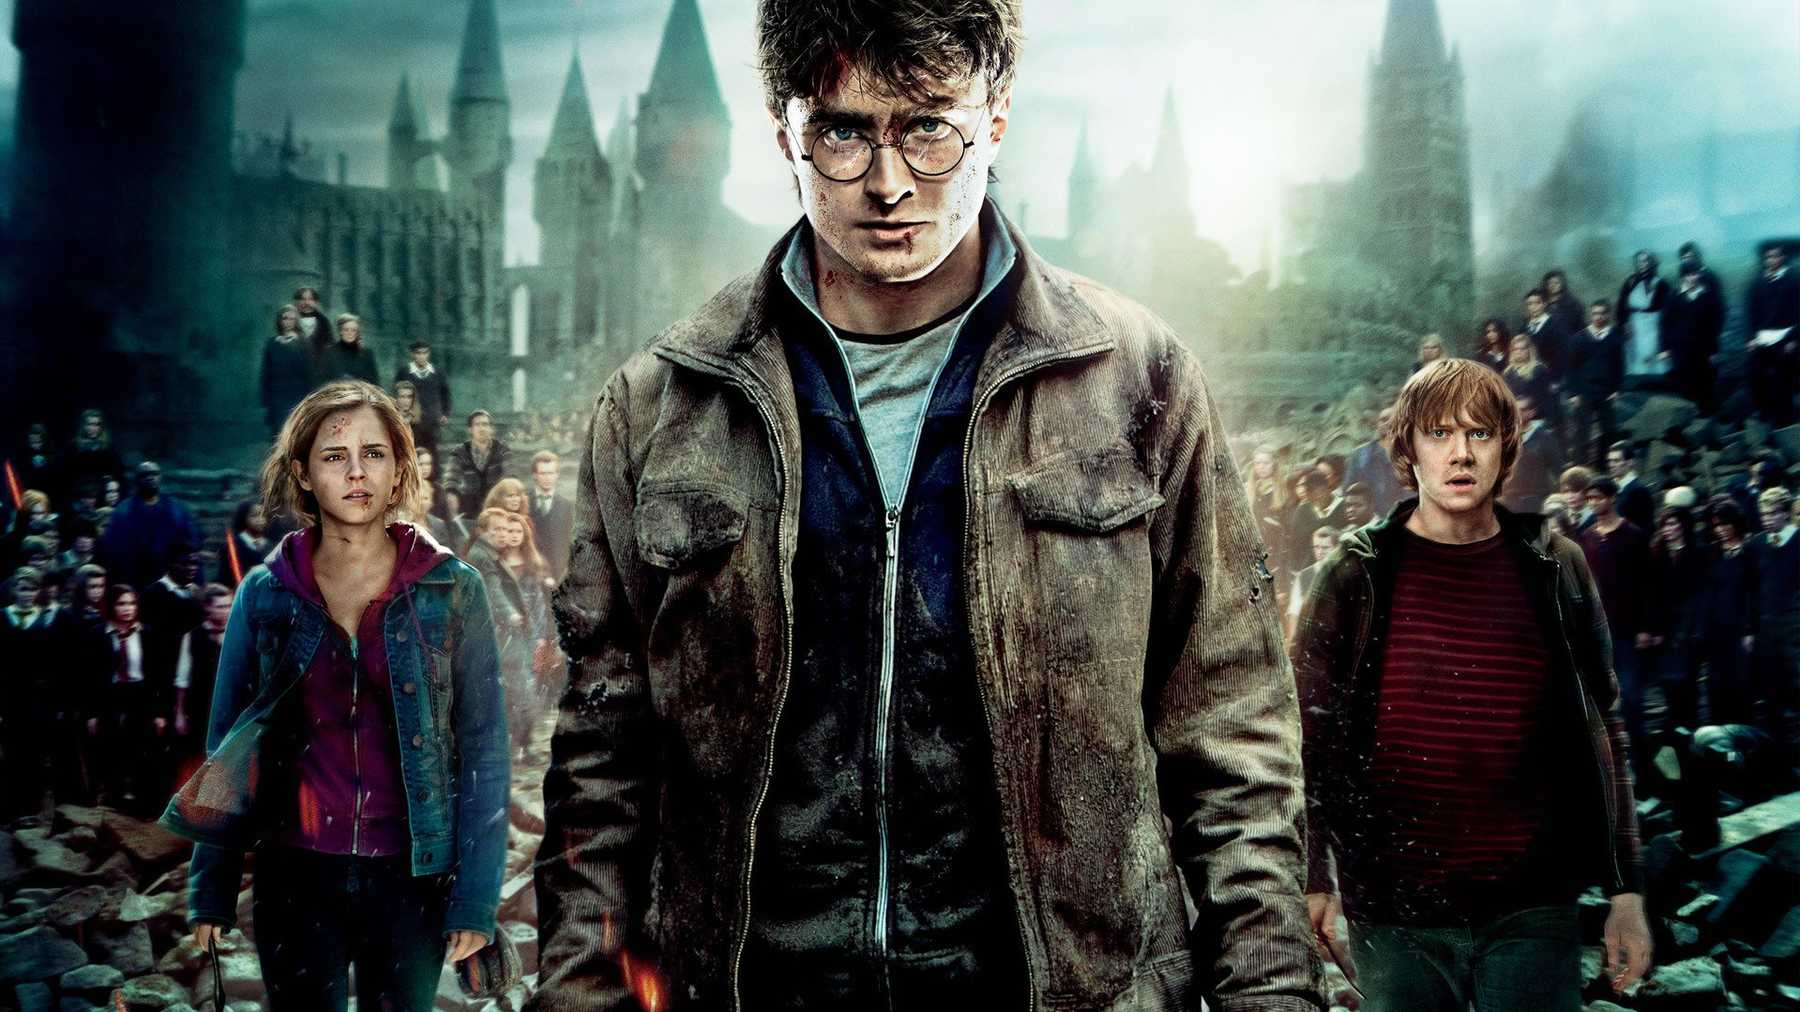 Harry Potter And The Deathly Hallows: Part 2 Review | Movie - Empire